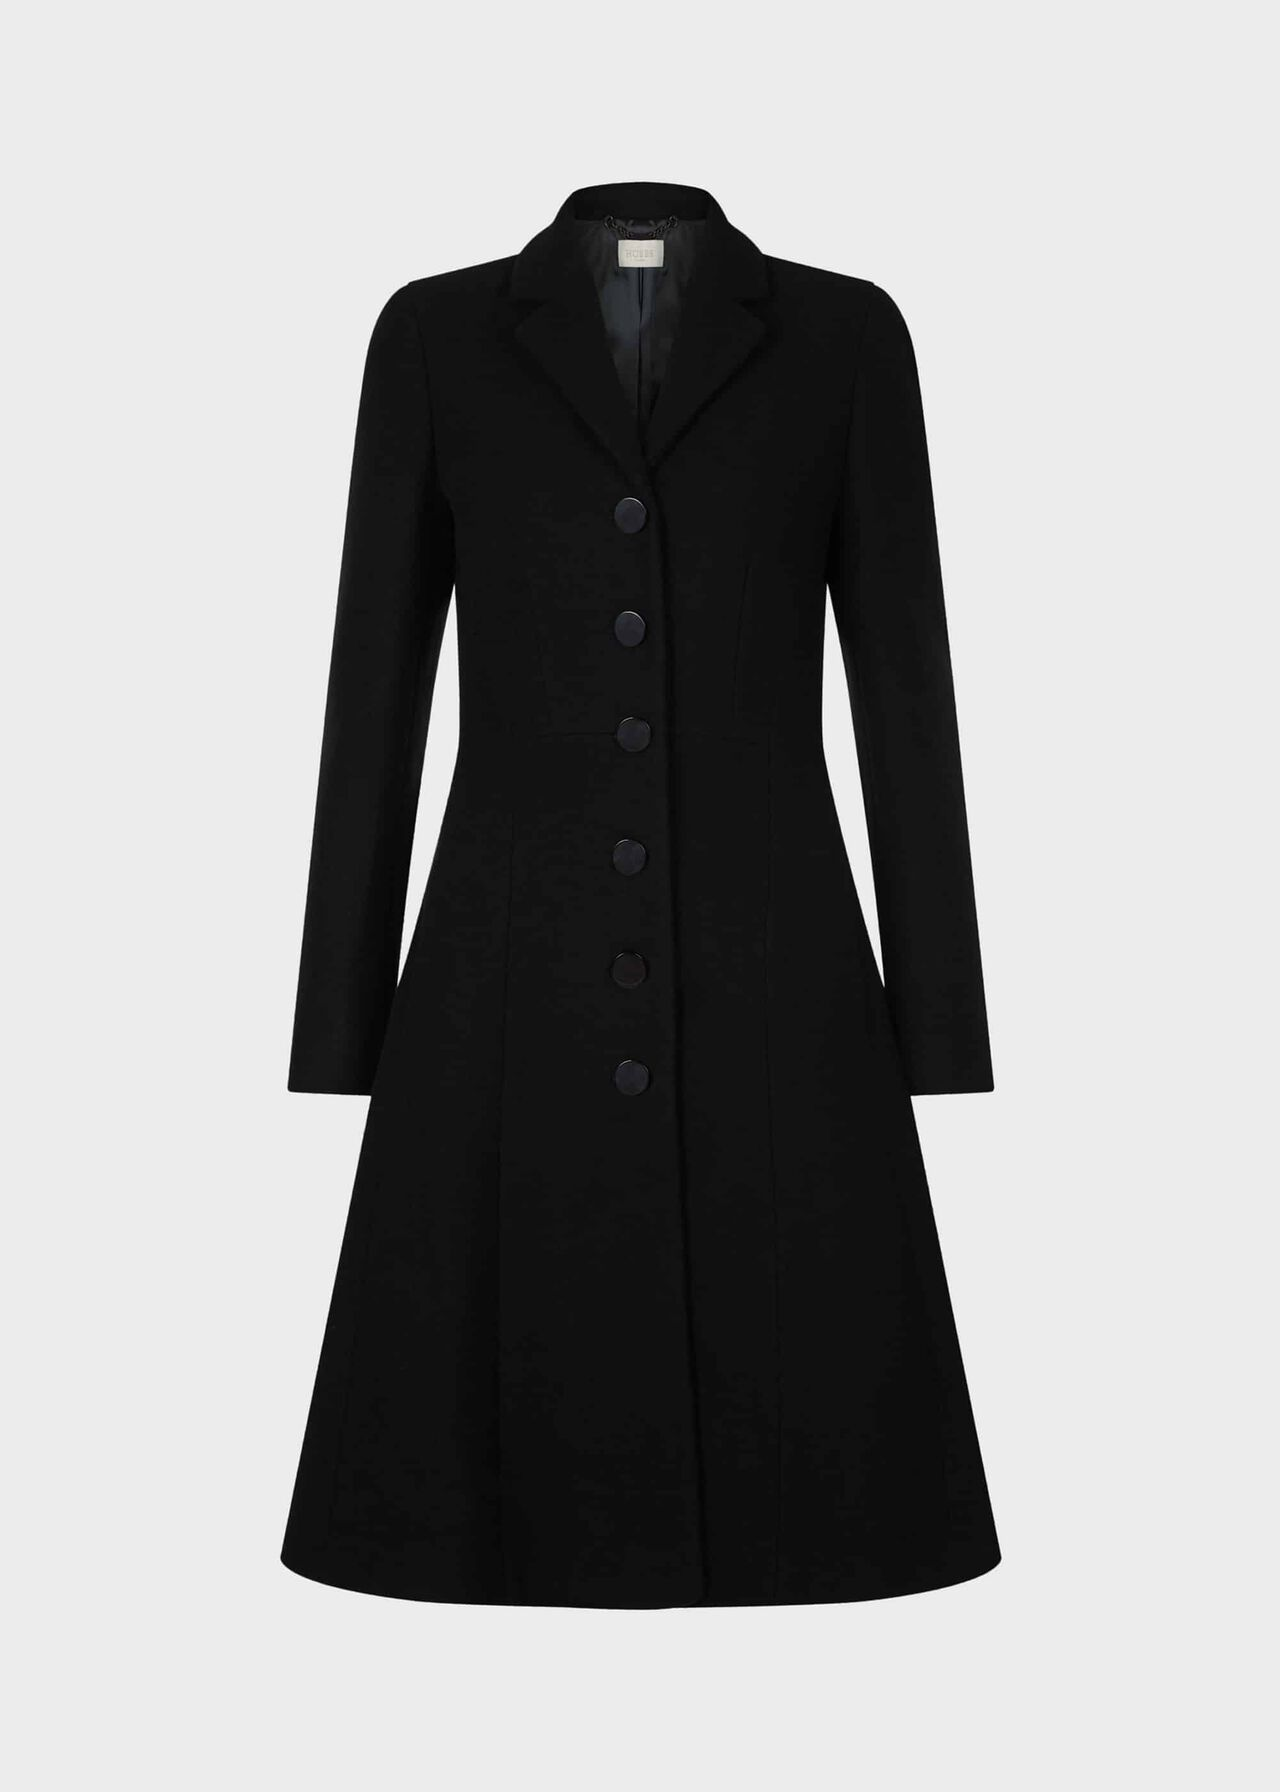 Milly Wool Blend Coat Black